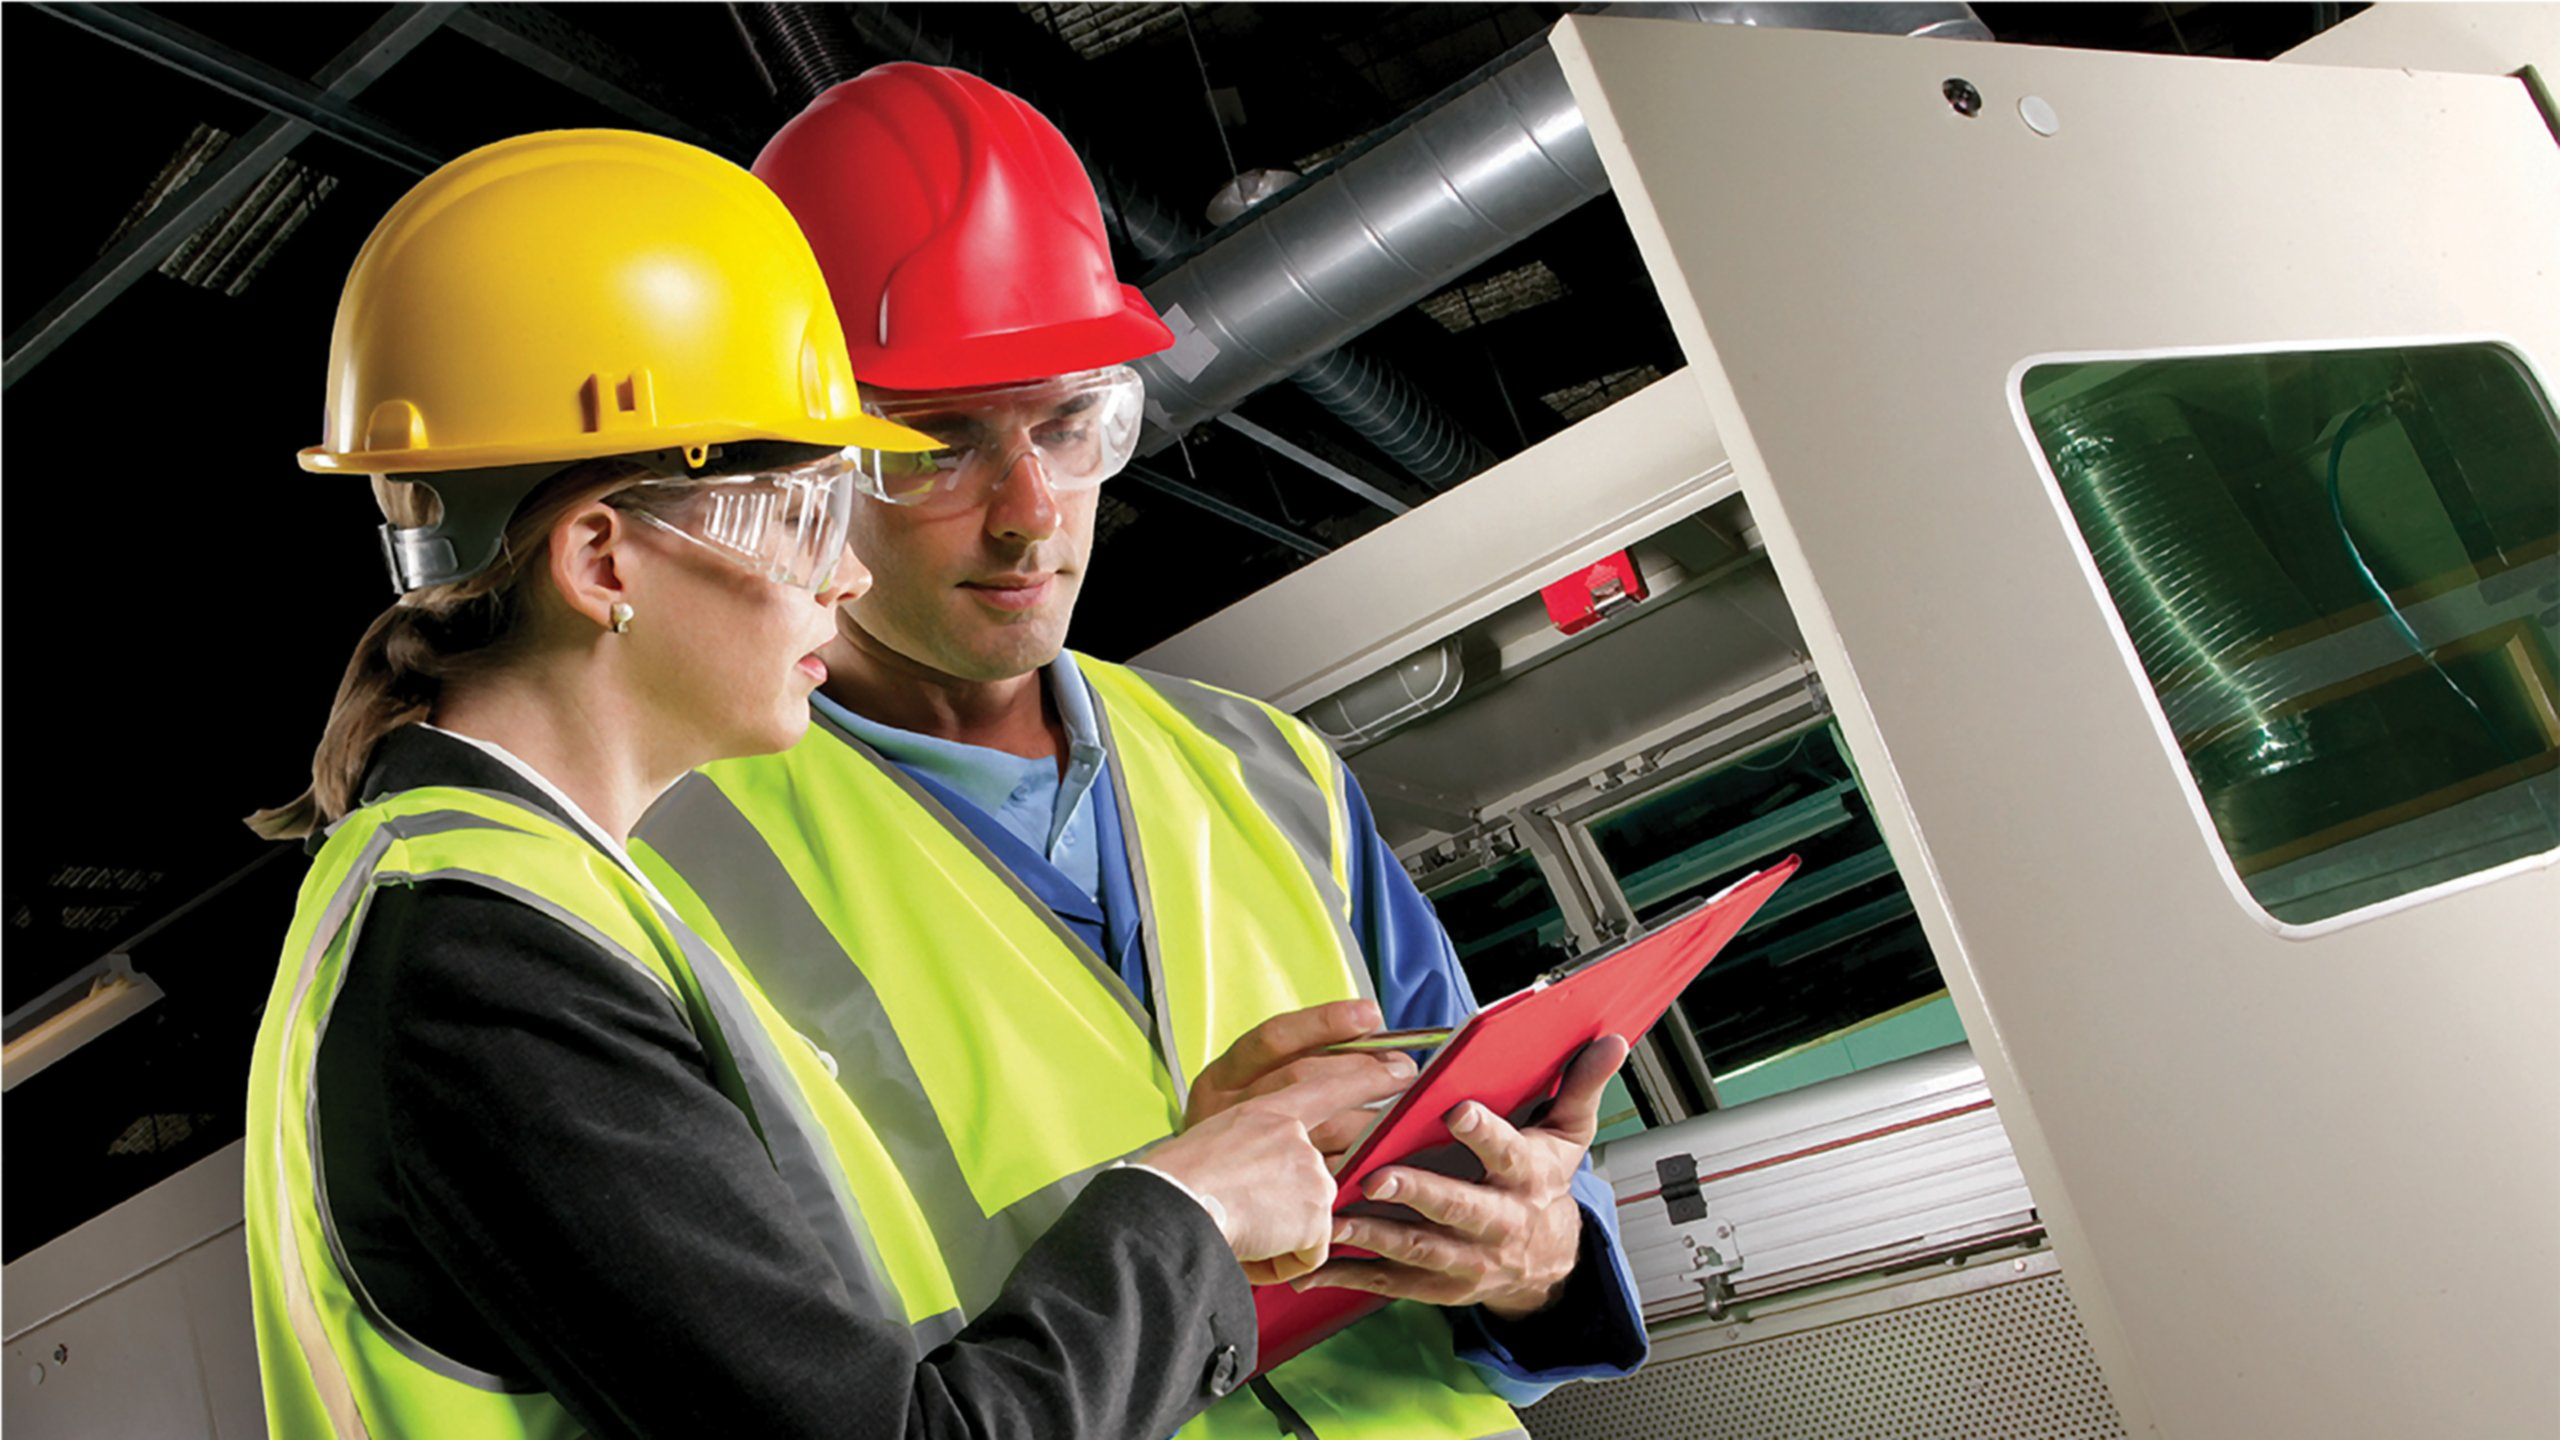 Female and male dressed in safety glasses, yellow reflective safety vests and yellow and red hard hats, looking at a red clipboard while in discussion in an industrial safety setting